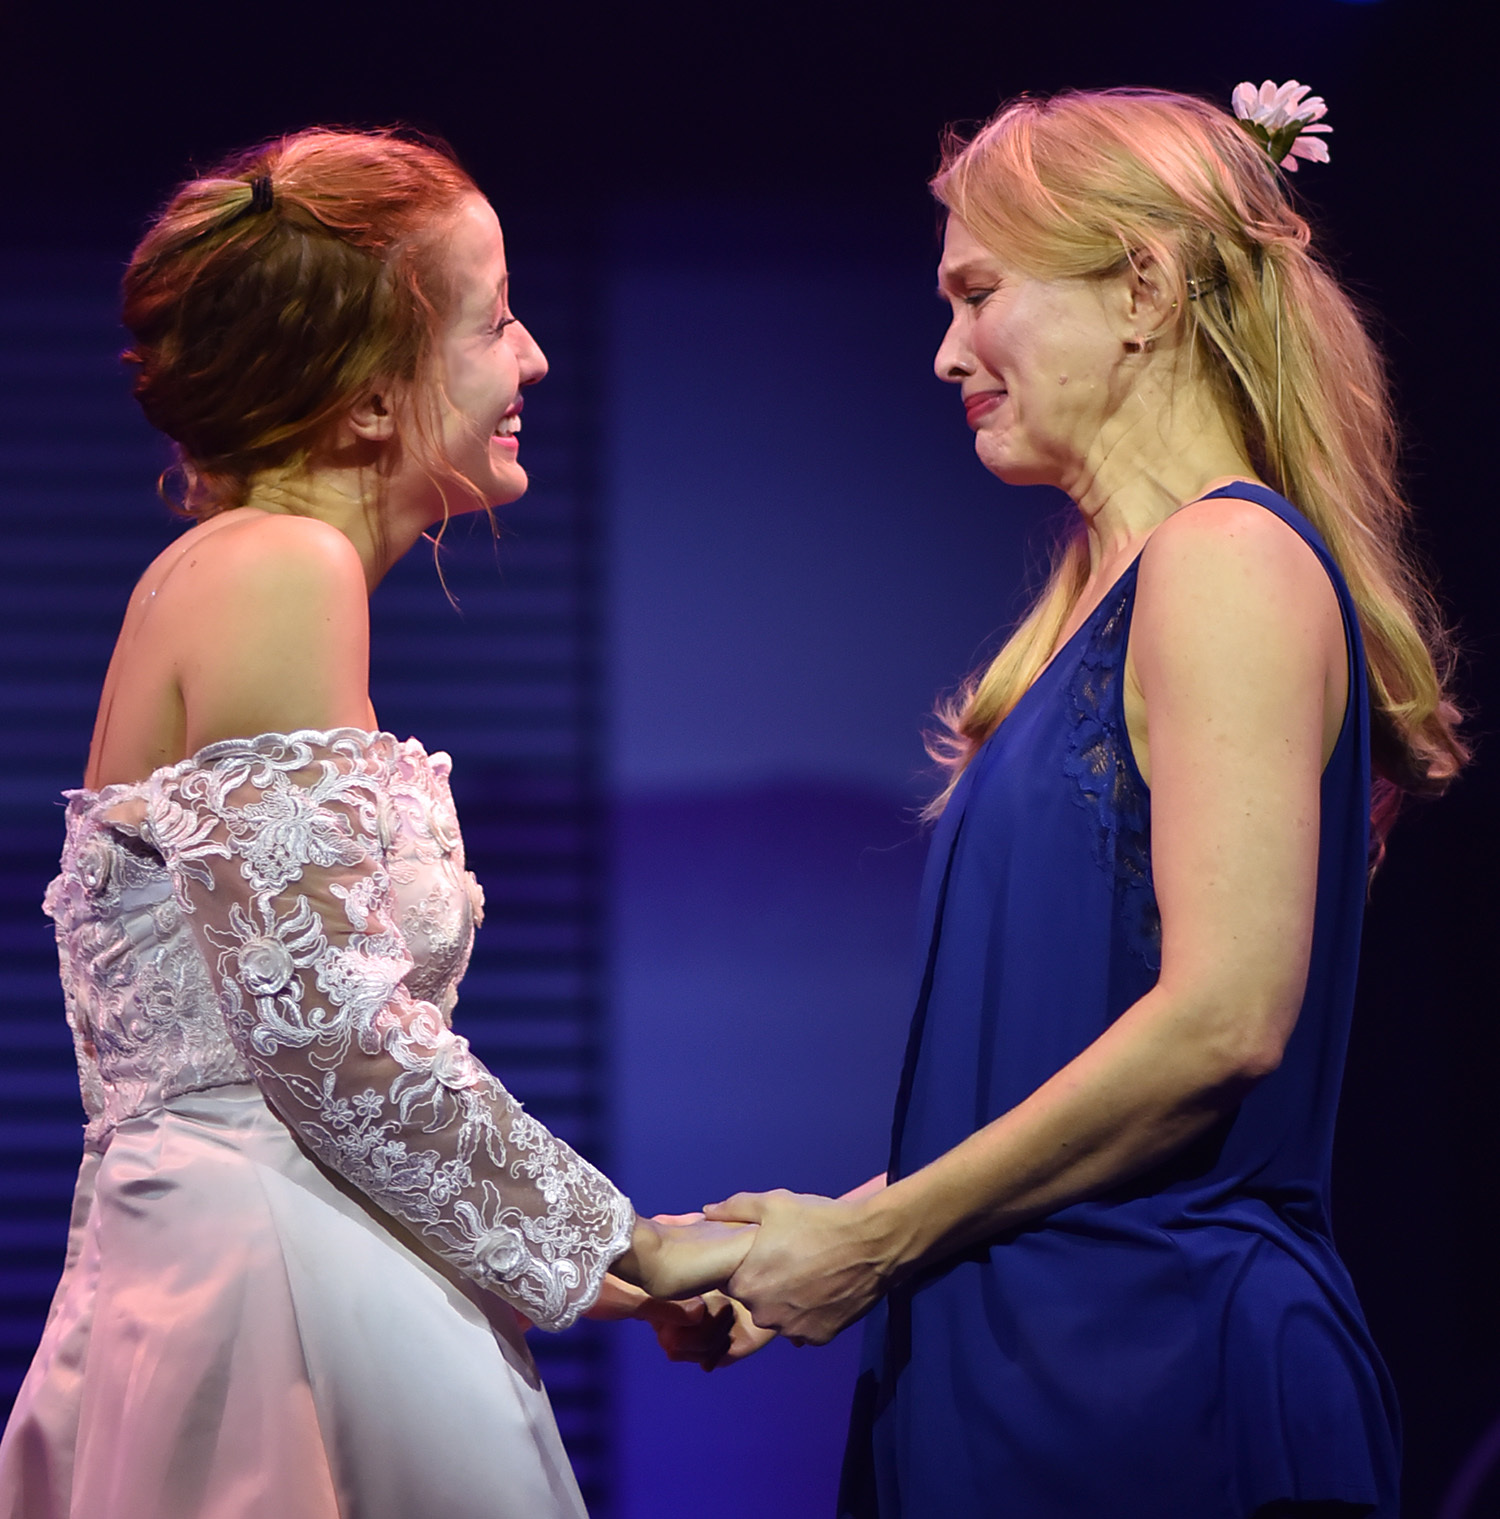 BWW Review: MAMMA MIA! at Beef & Boards Dinner Theatre